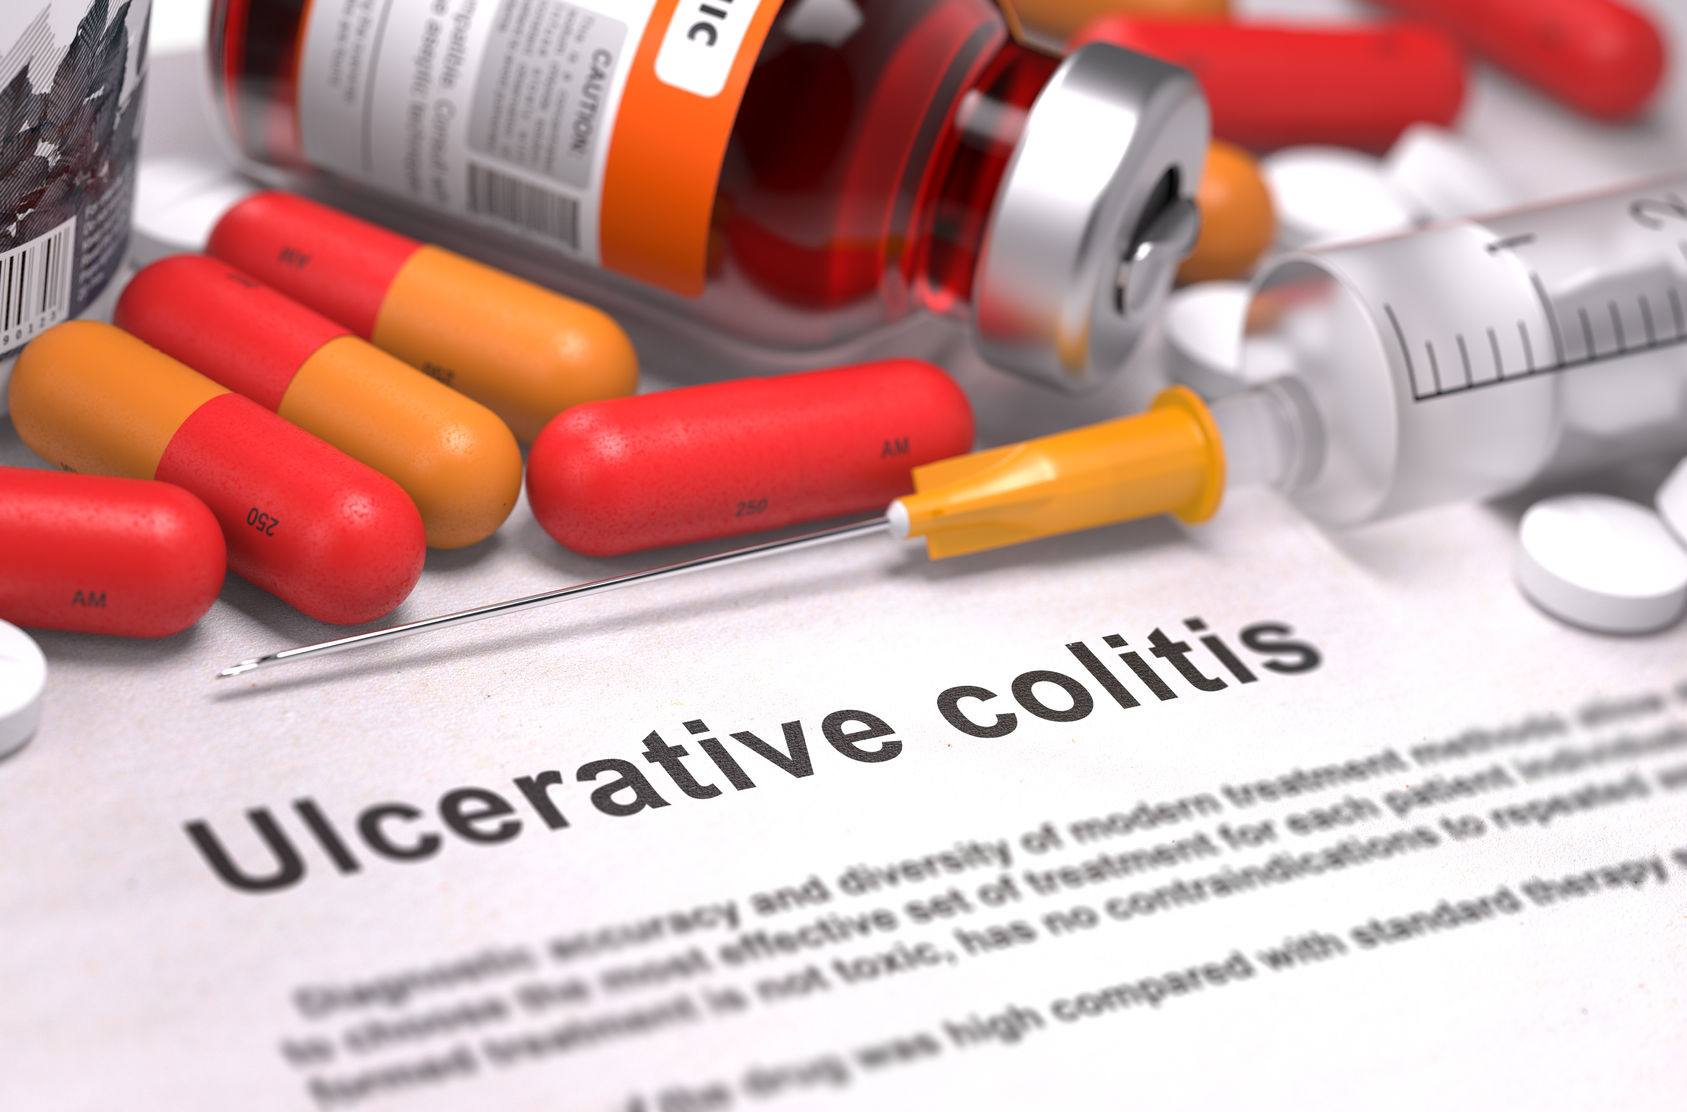 Ulcerative Colitis Recruitment